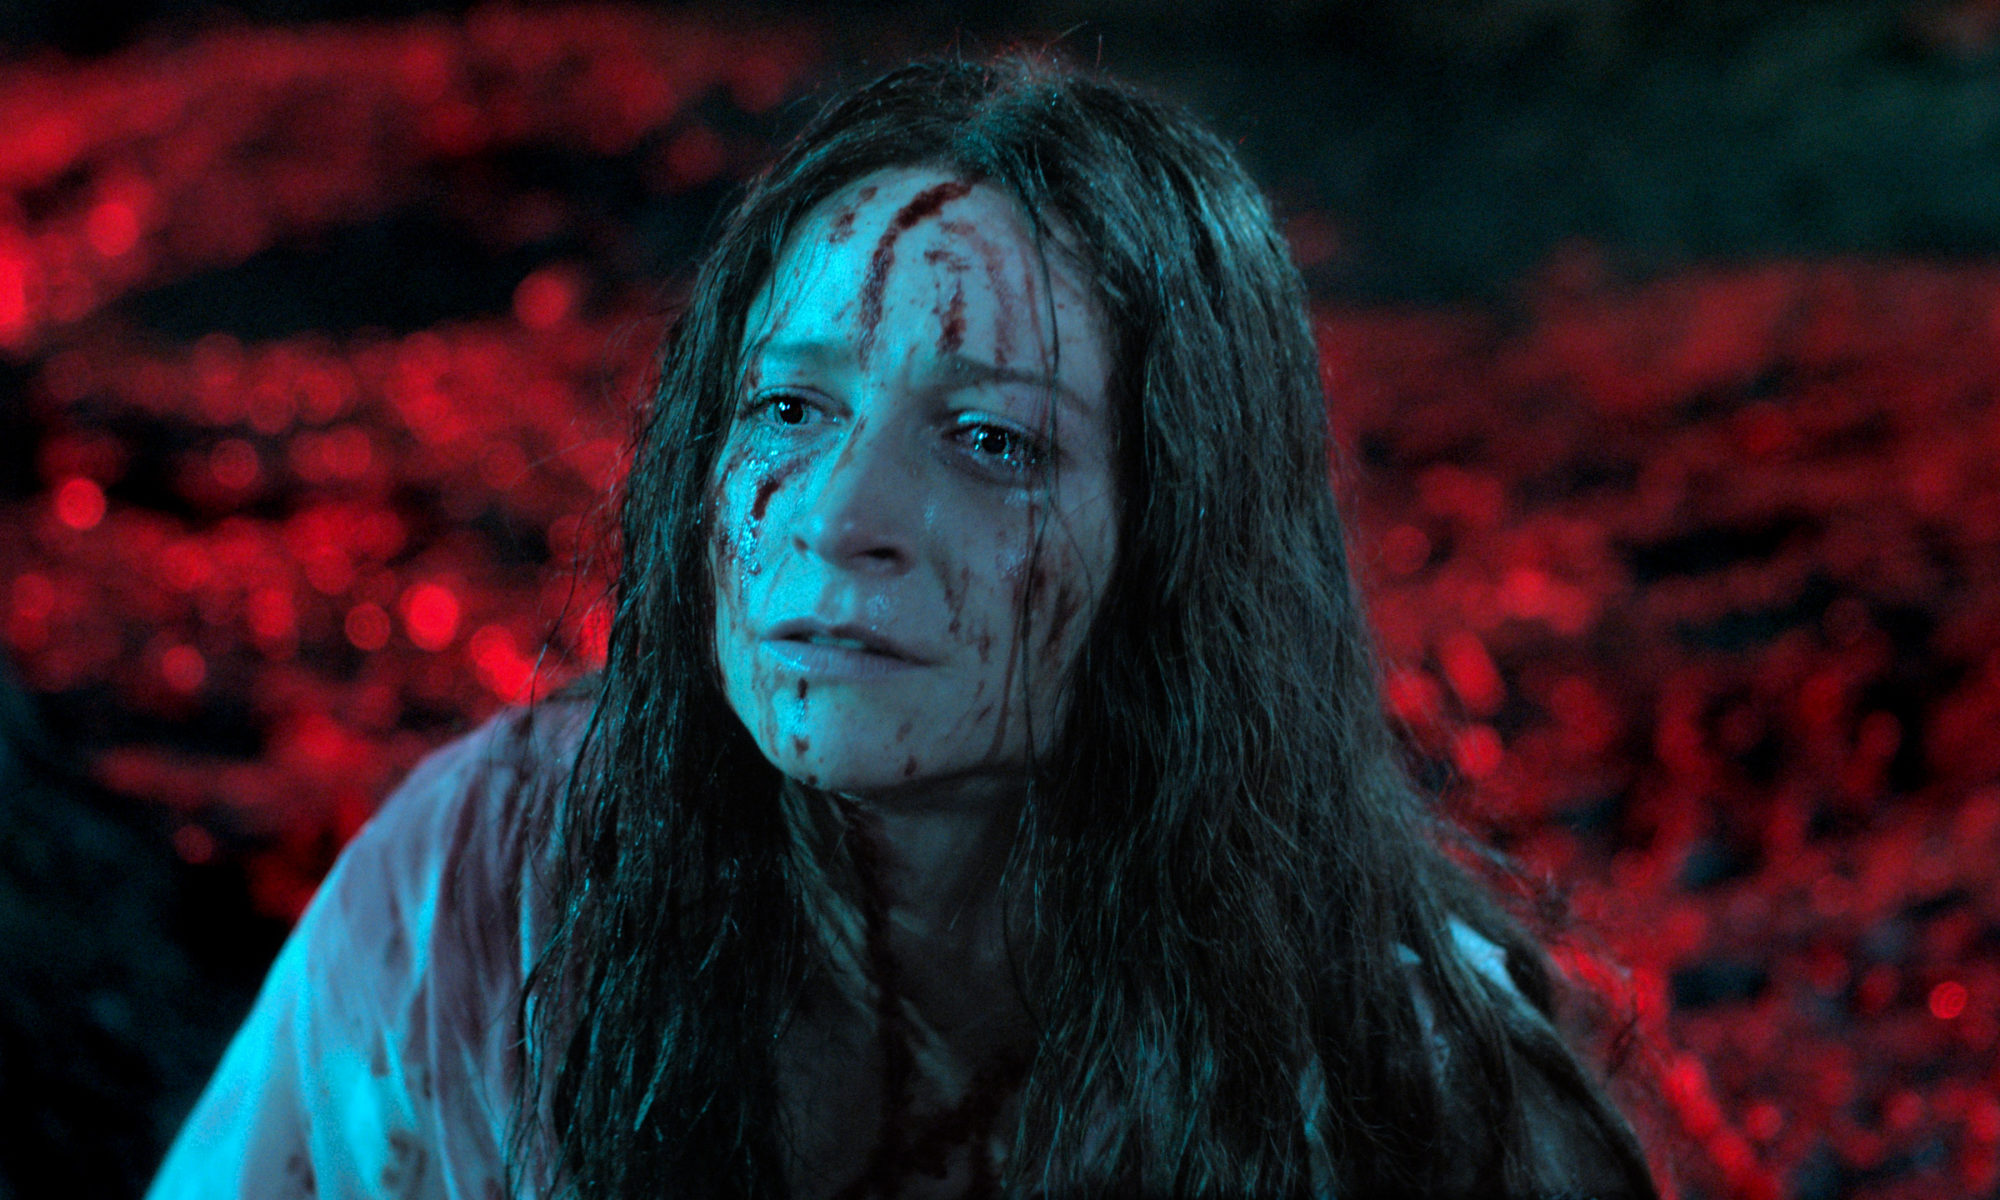 A woman in a forest with a red background and streaks of blood drying on her face